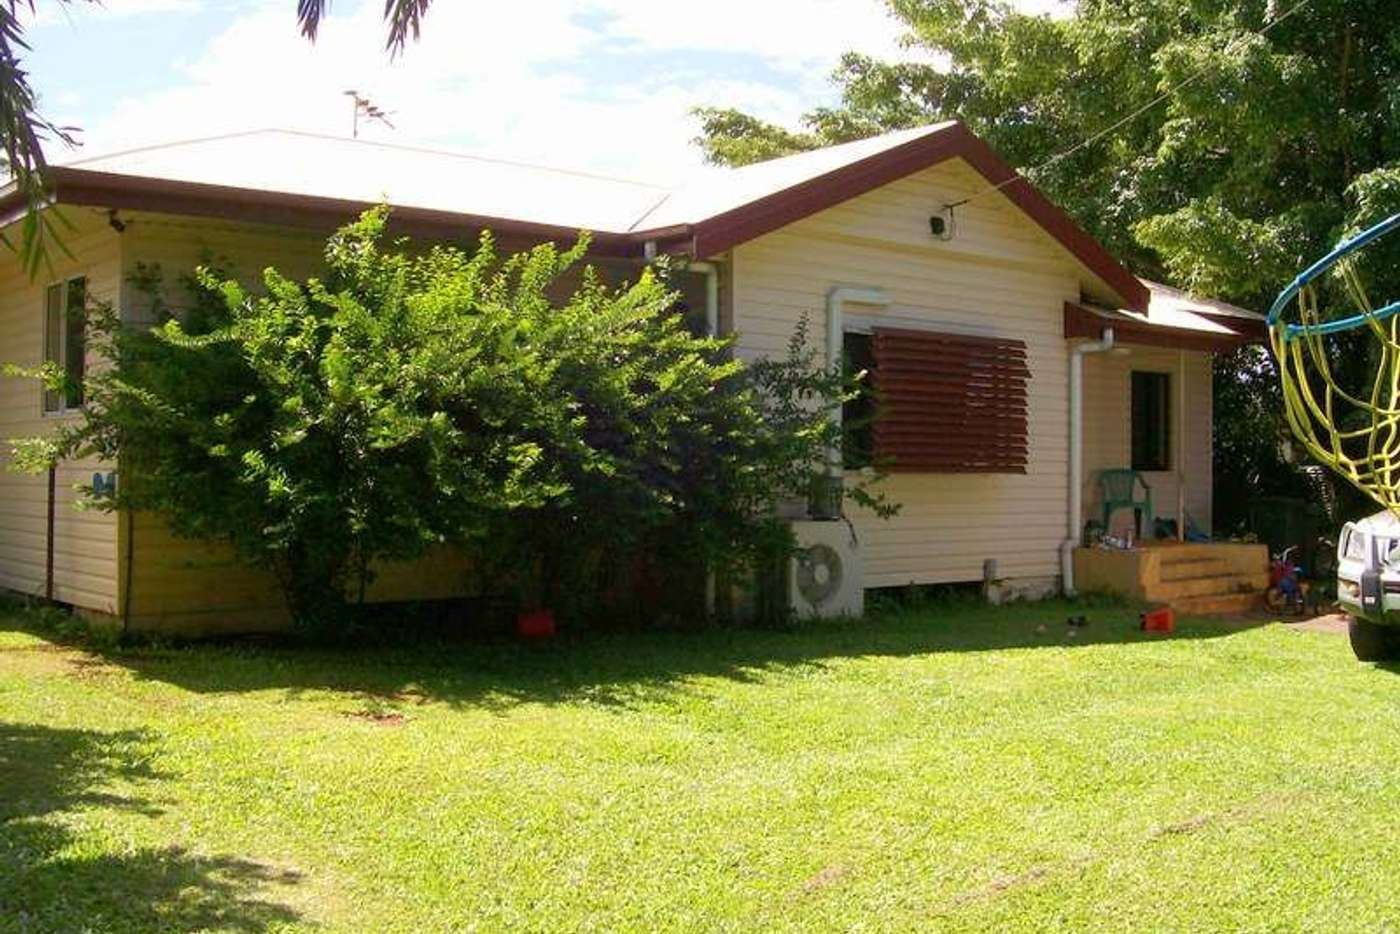 Main view of Homely house listing, 3 Gray Street, Wangan QLD 4871